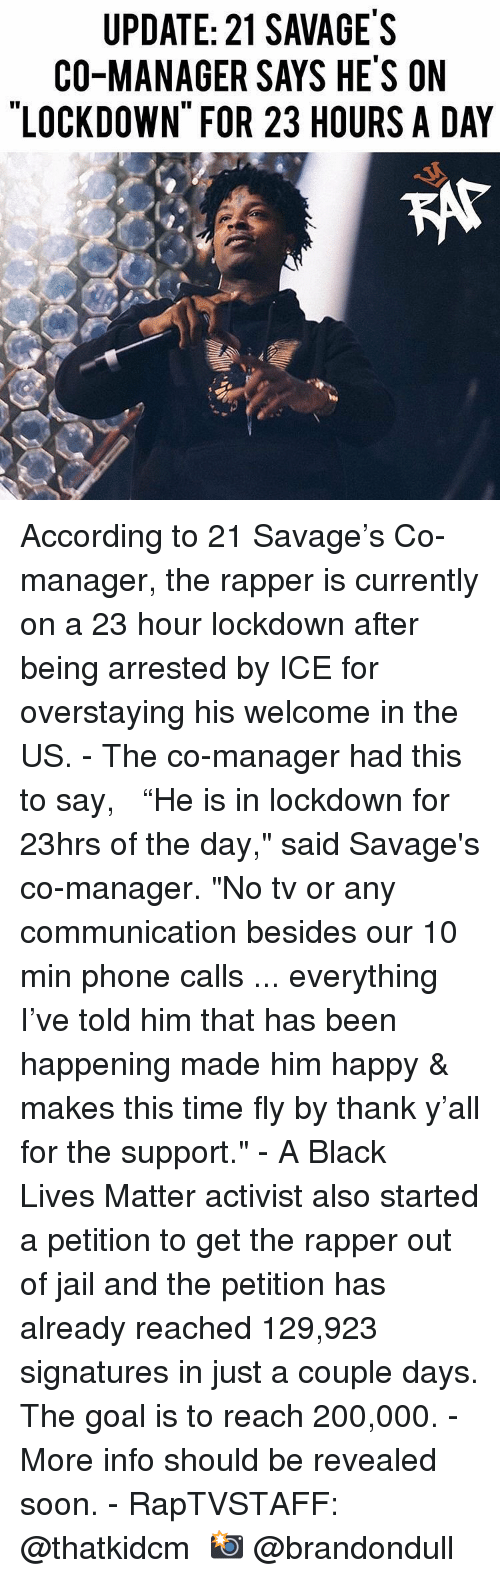 """activist: UPDATE: 21 SAVAGE'S  CO-MANAGER SAYS HE'S ON  LOCKDOWN FOR 23 HOURS A DAY  KAt According to 21 Savage's Co-manager, the rapper is currently on a 23 hour lockdown after being arrested by ICE for overstaying his welcome in the US. - The co-manager had this to say,   """"He is in lockdown for 23hrs of the day,"""" said Savage's co-manager. """"No tv or any communication besides our 10 min phone calls ... everything I've told him that has been happening made him happy & makes this time fly by thank y'all for the support."""" - A Black Lives Matter activist also started a petition to get the rapper out of jail and the petition has already reached 129,923 signatures in just a couple days. The goal is to reach 200,000. - More info should be revealed soon. - RapTVSTAFF: @thatkidcm 📸 @brandondull"""